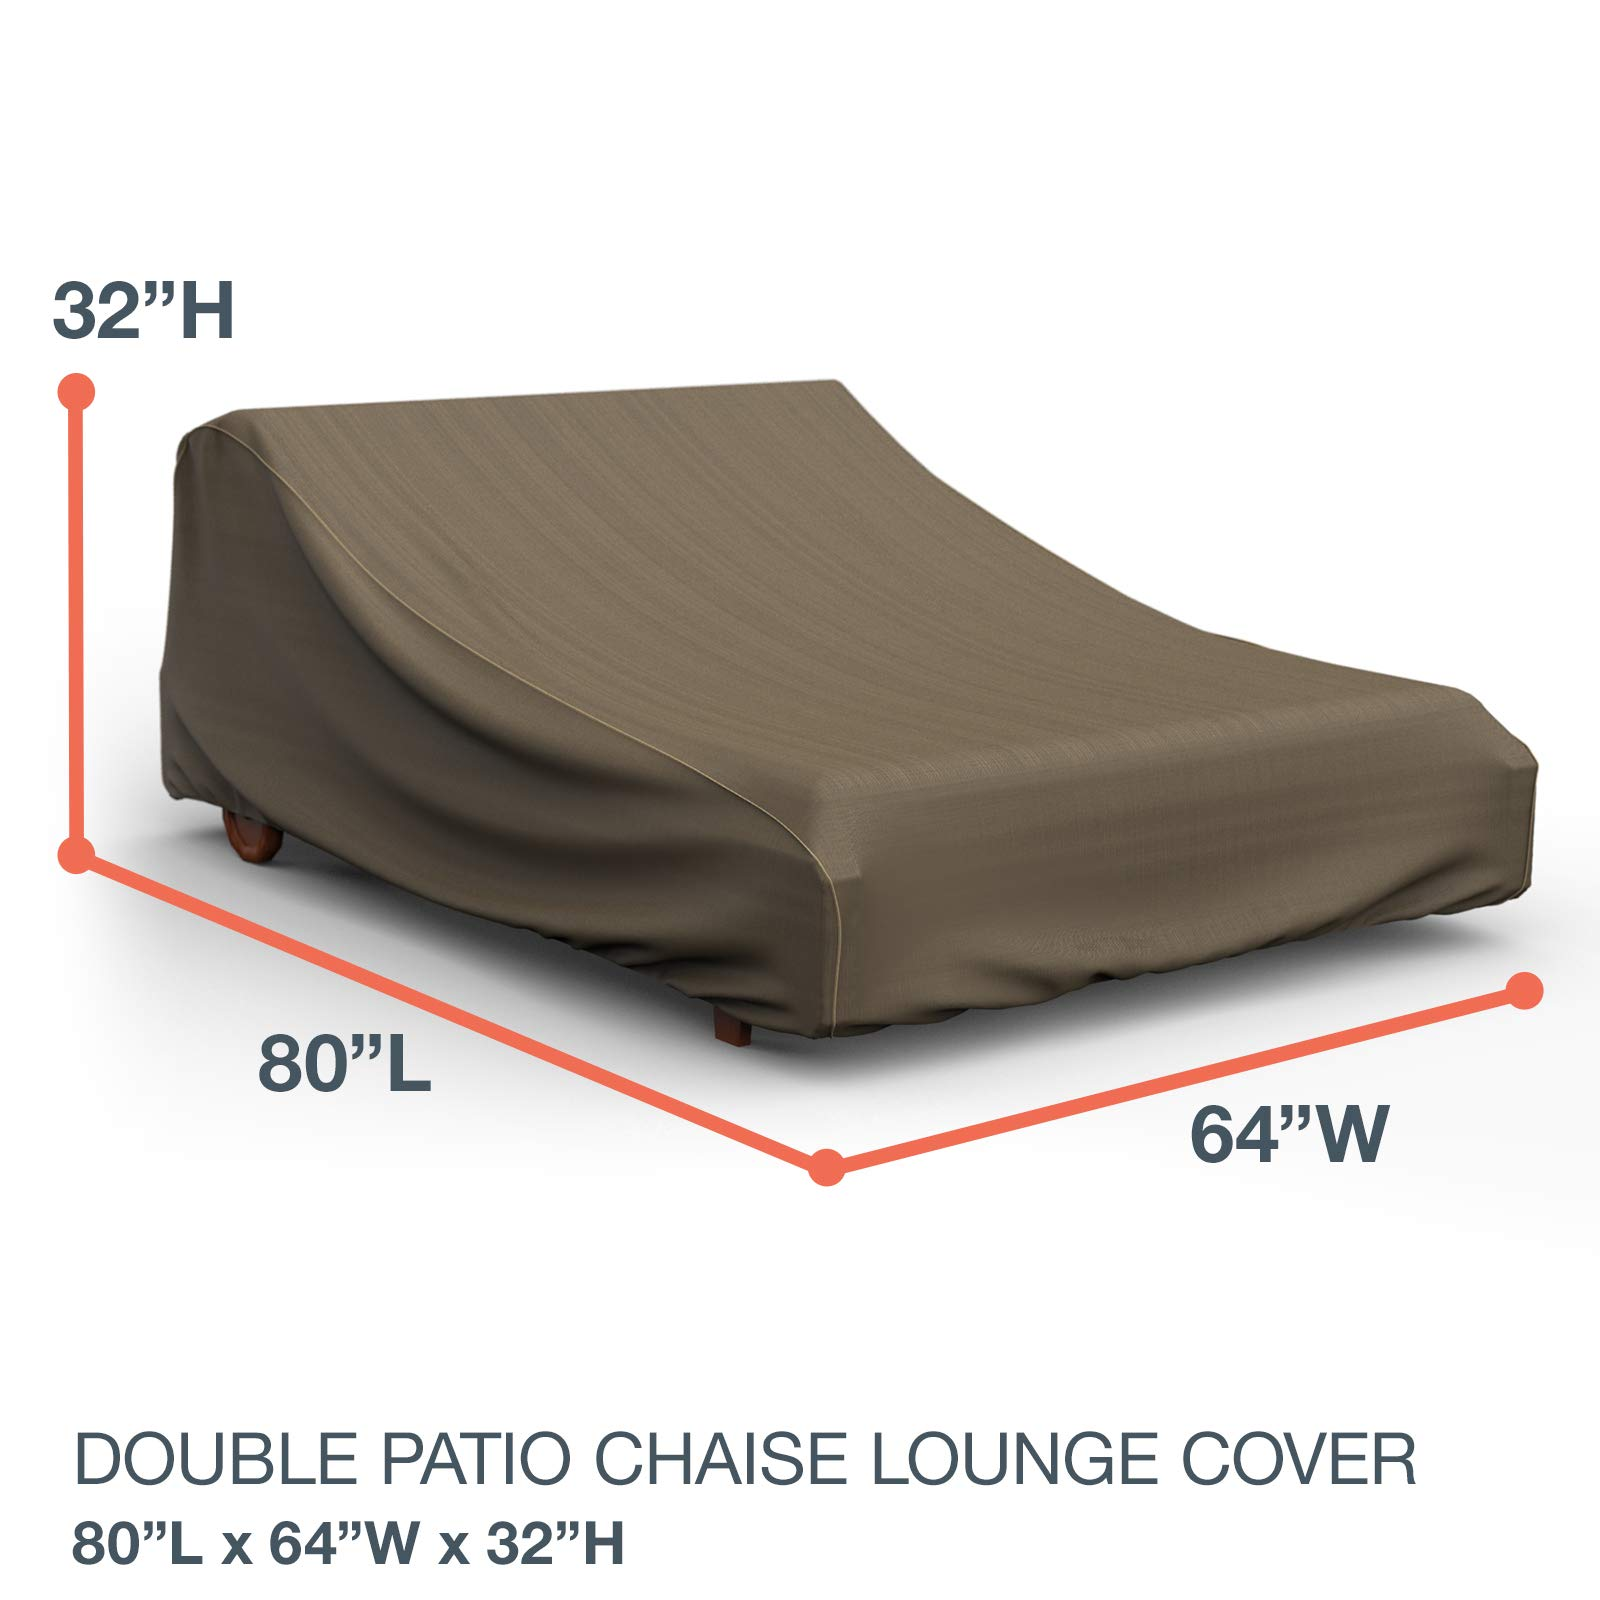 NeverWet Platinum Double Patio Chaise Lounge Cover, (Black and Tan Weave) by EmpireCovers (Image #2)